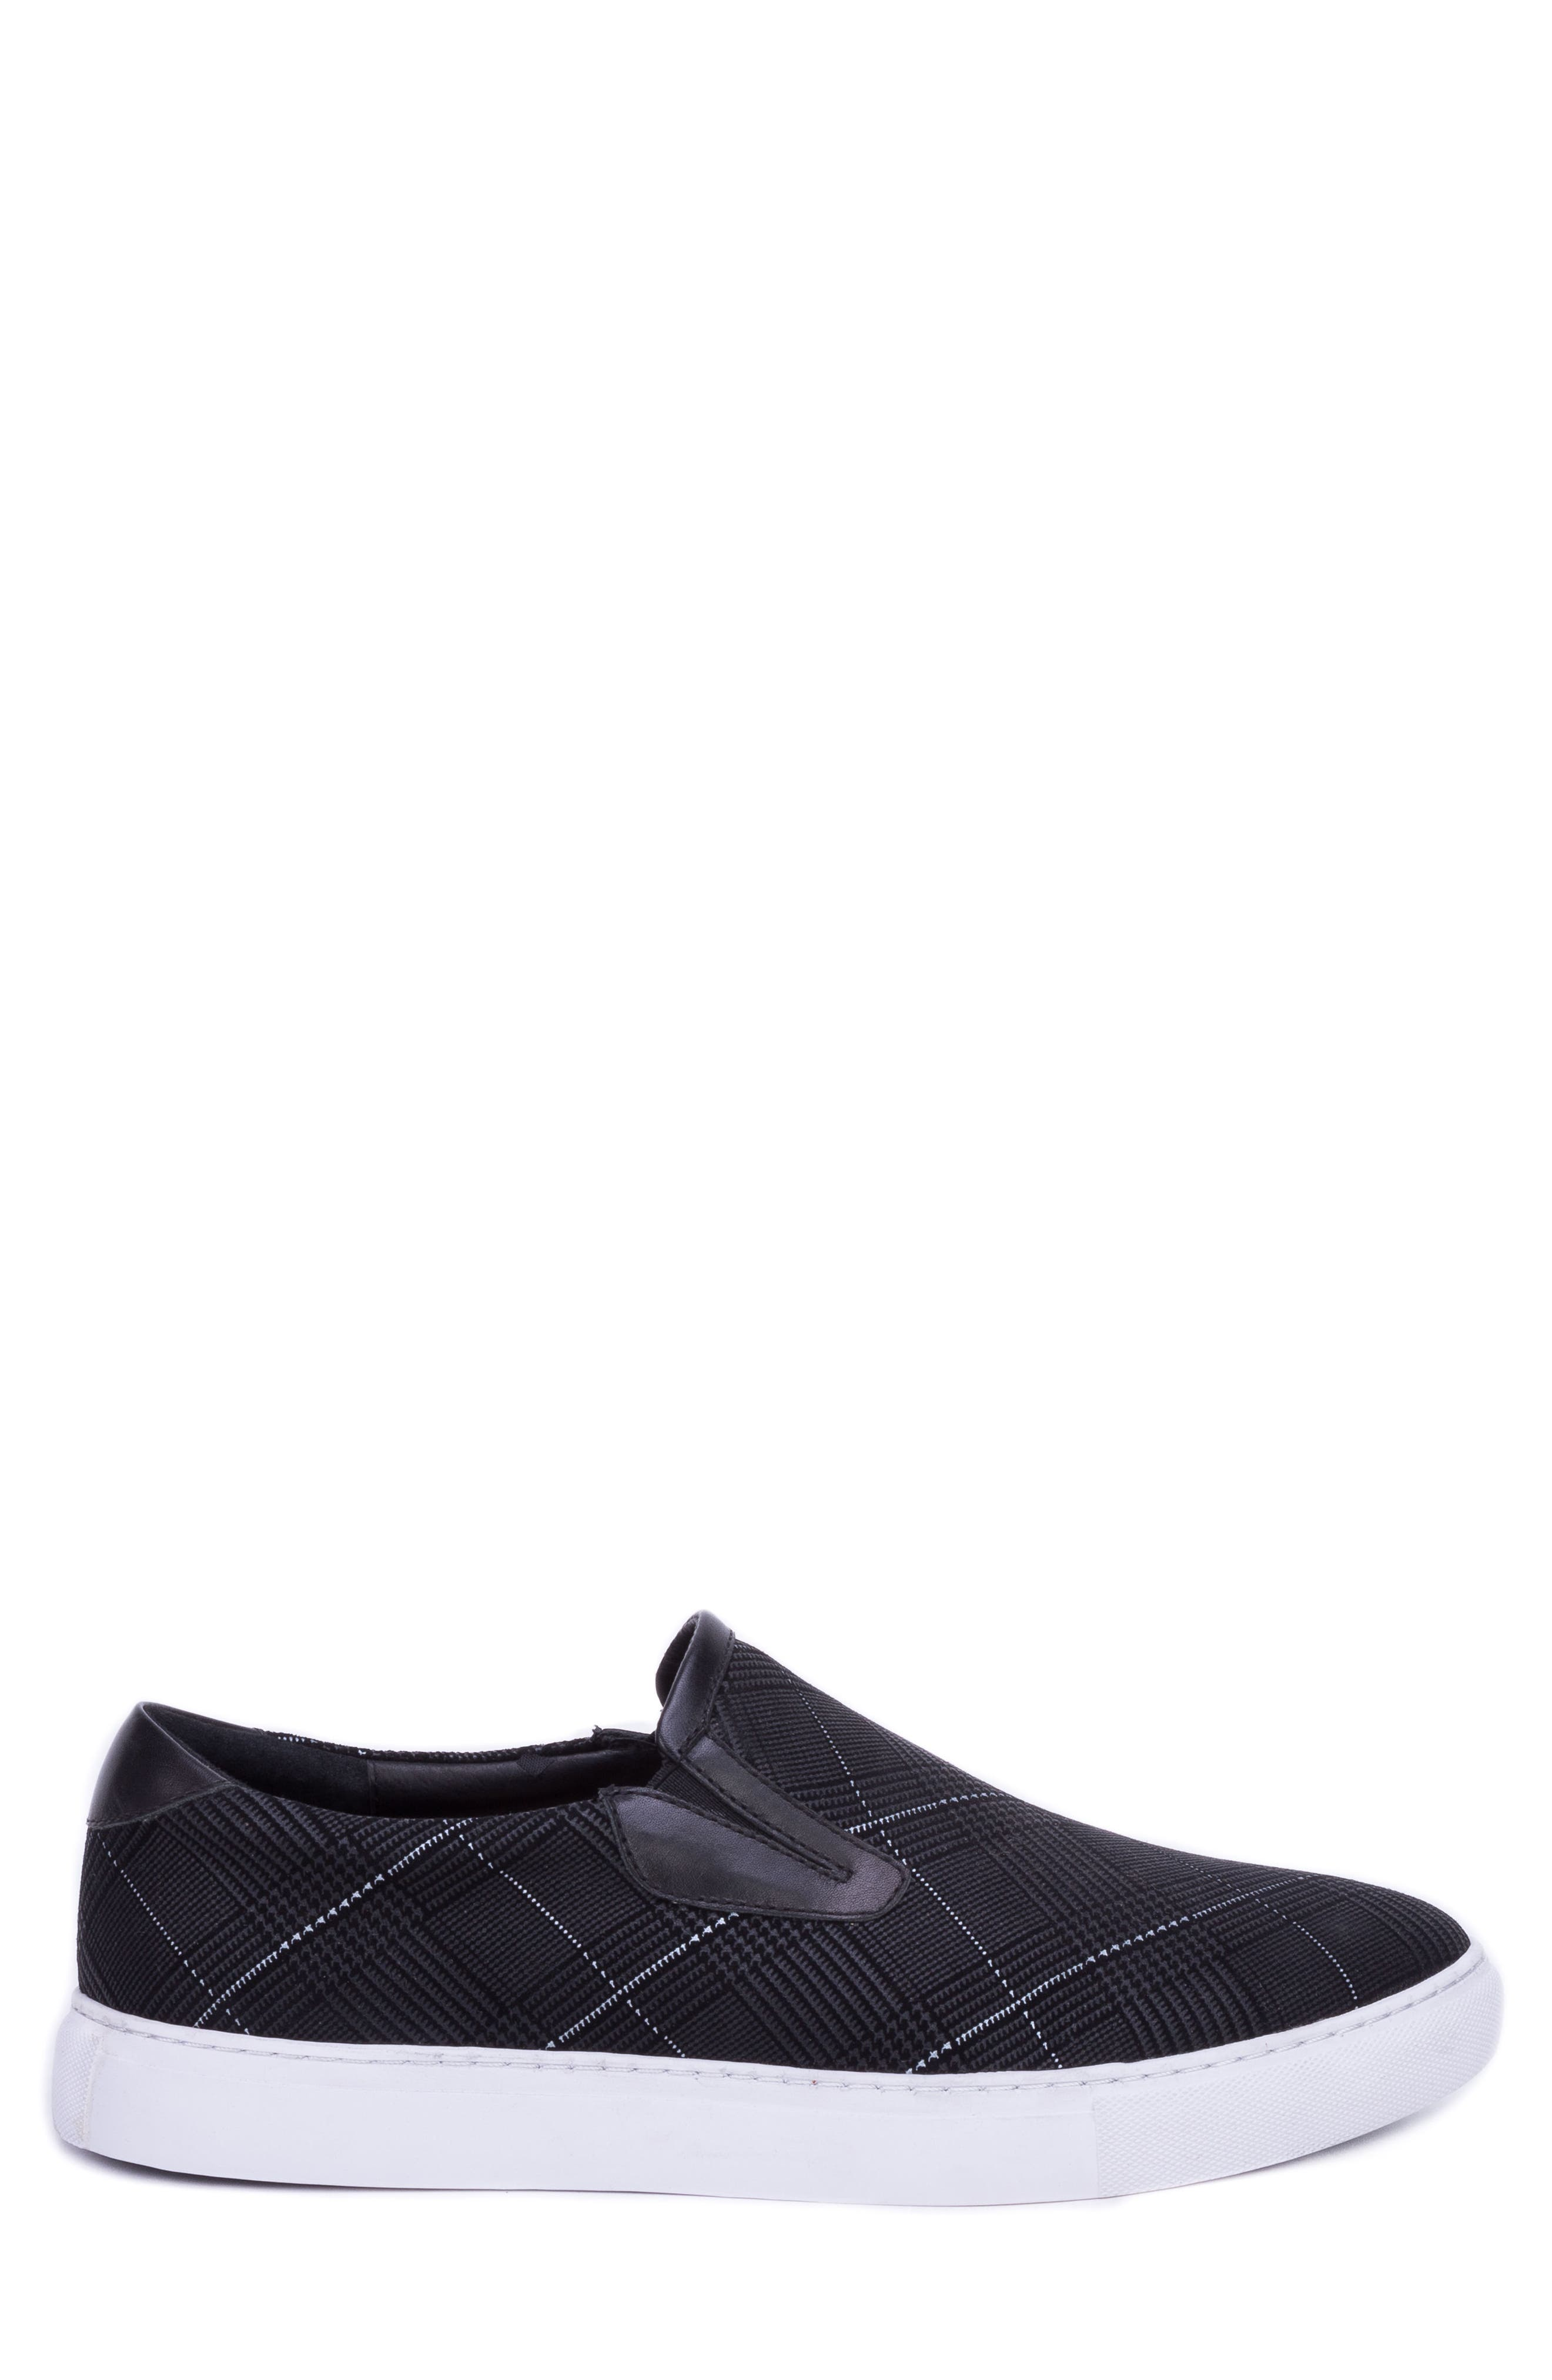 Kerby Slip-On Sneaker,                             Alternate thumbnail 3, color,                             BLACK SUEDE